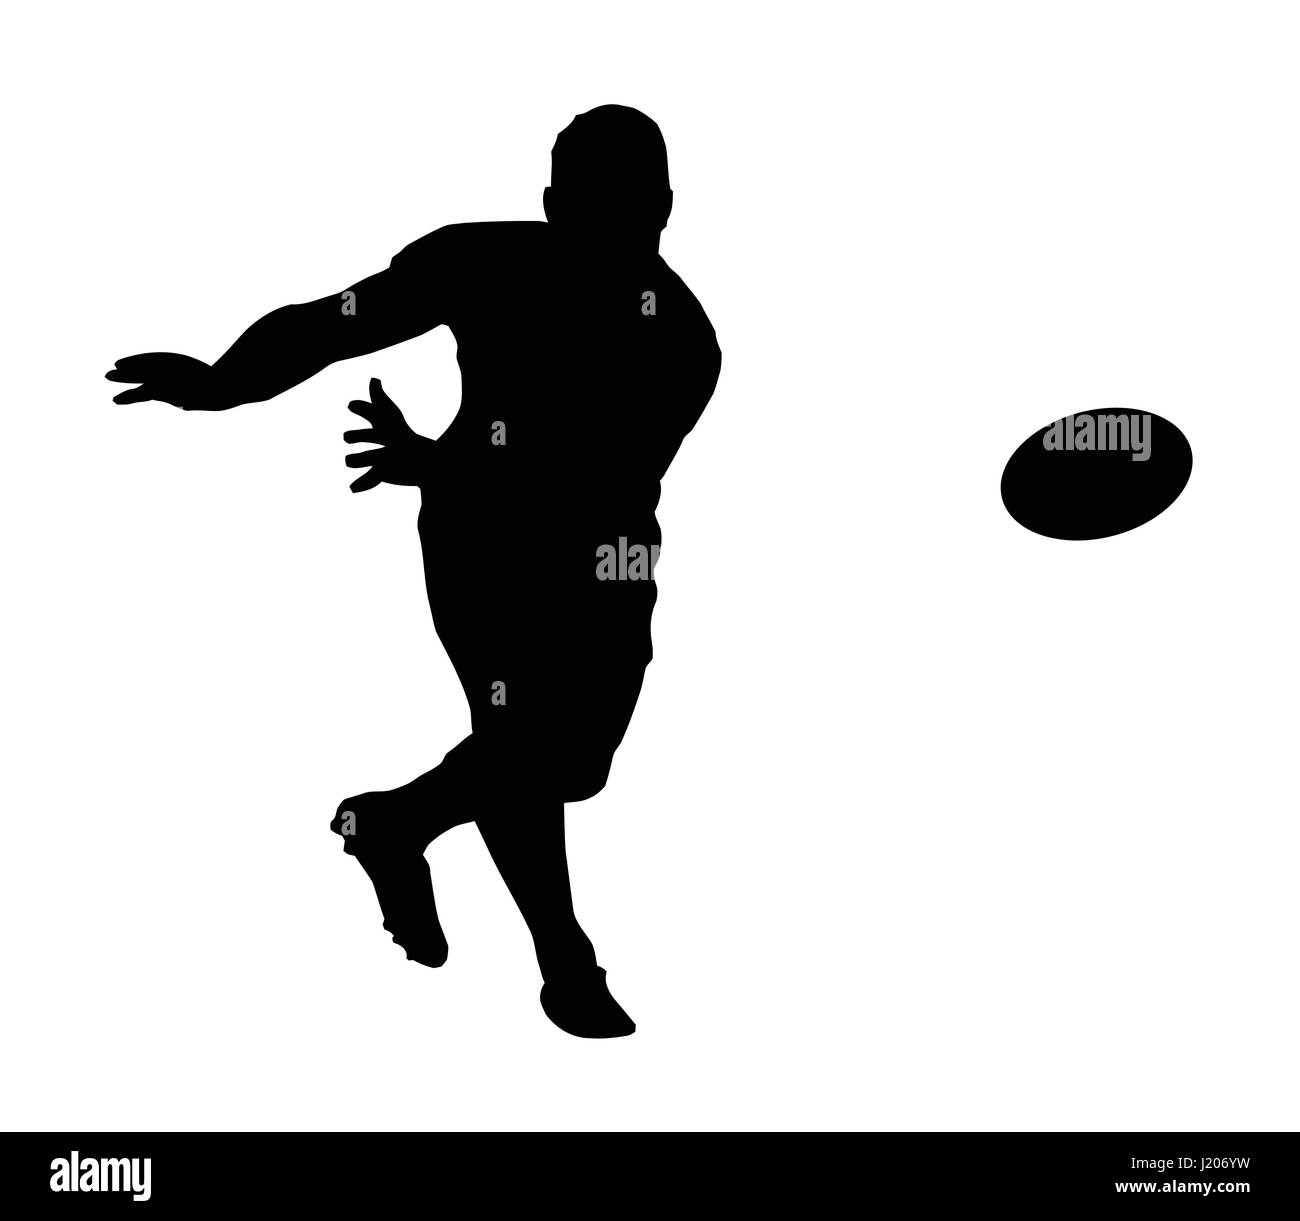 Rugby Football Black and White Stock Photos & Images - Alamy